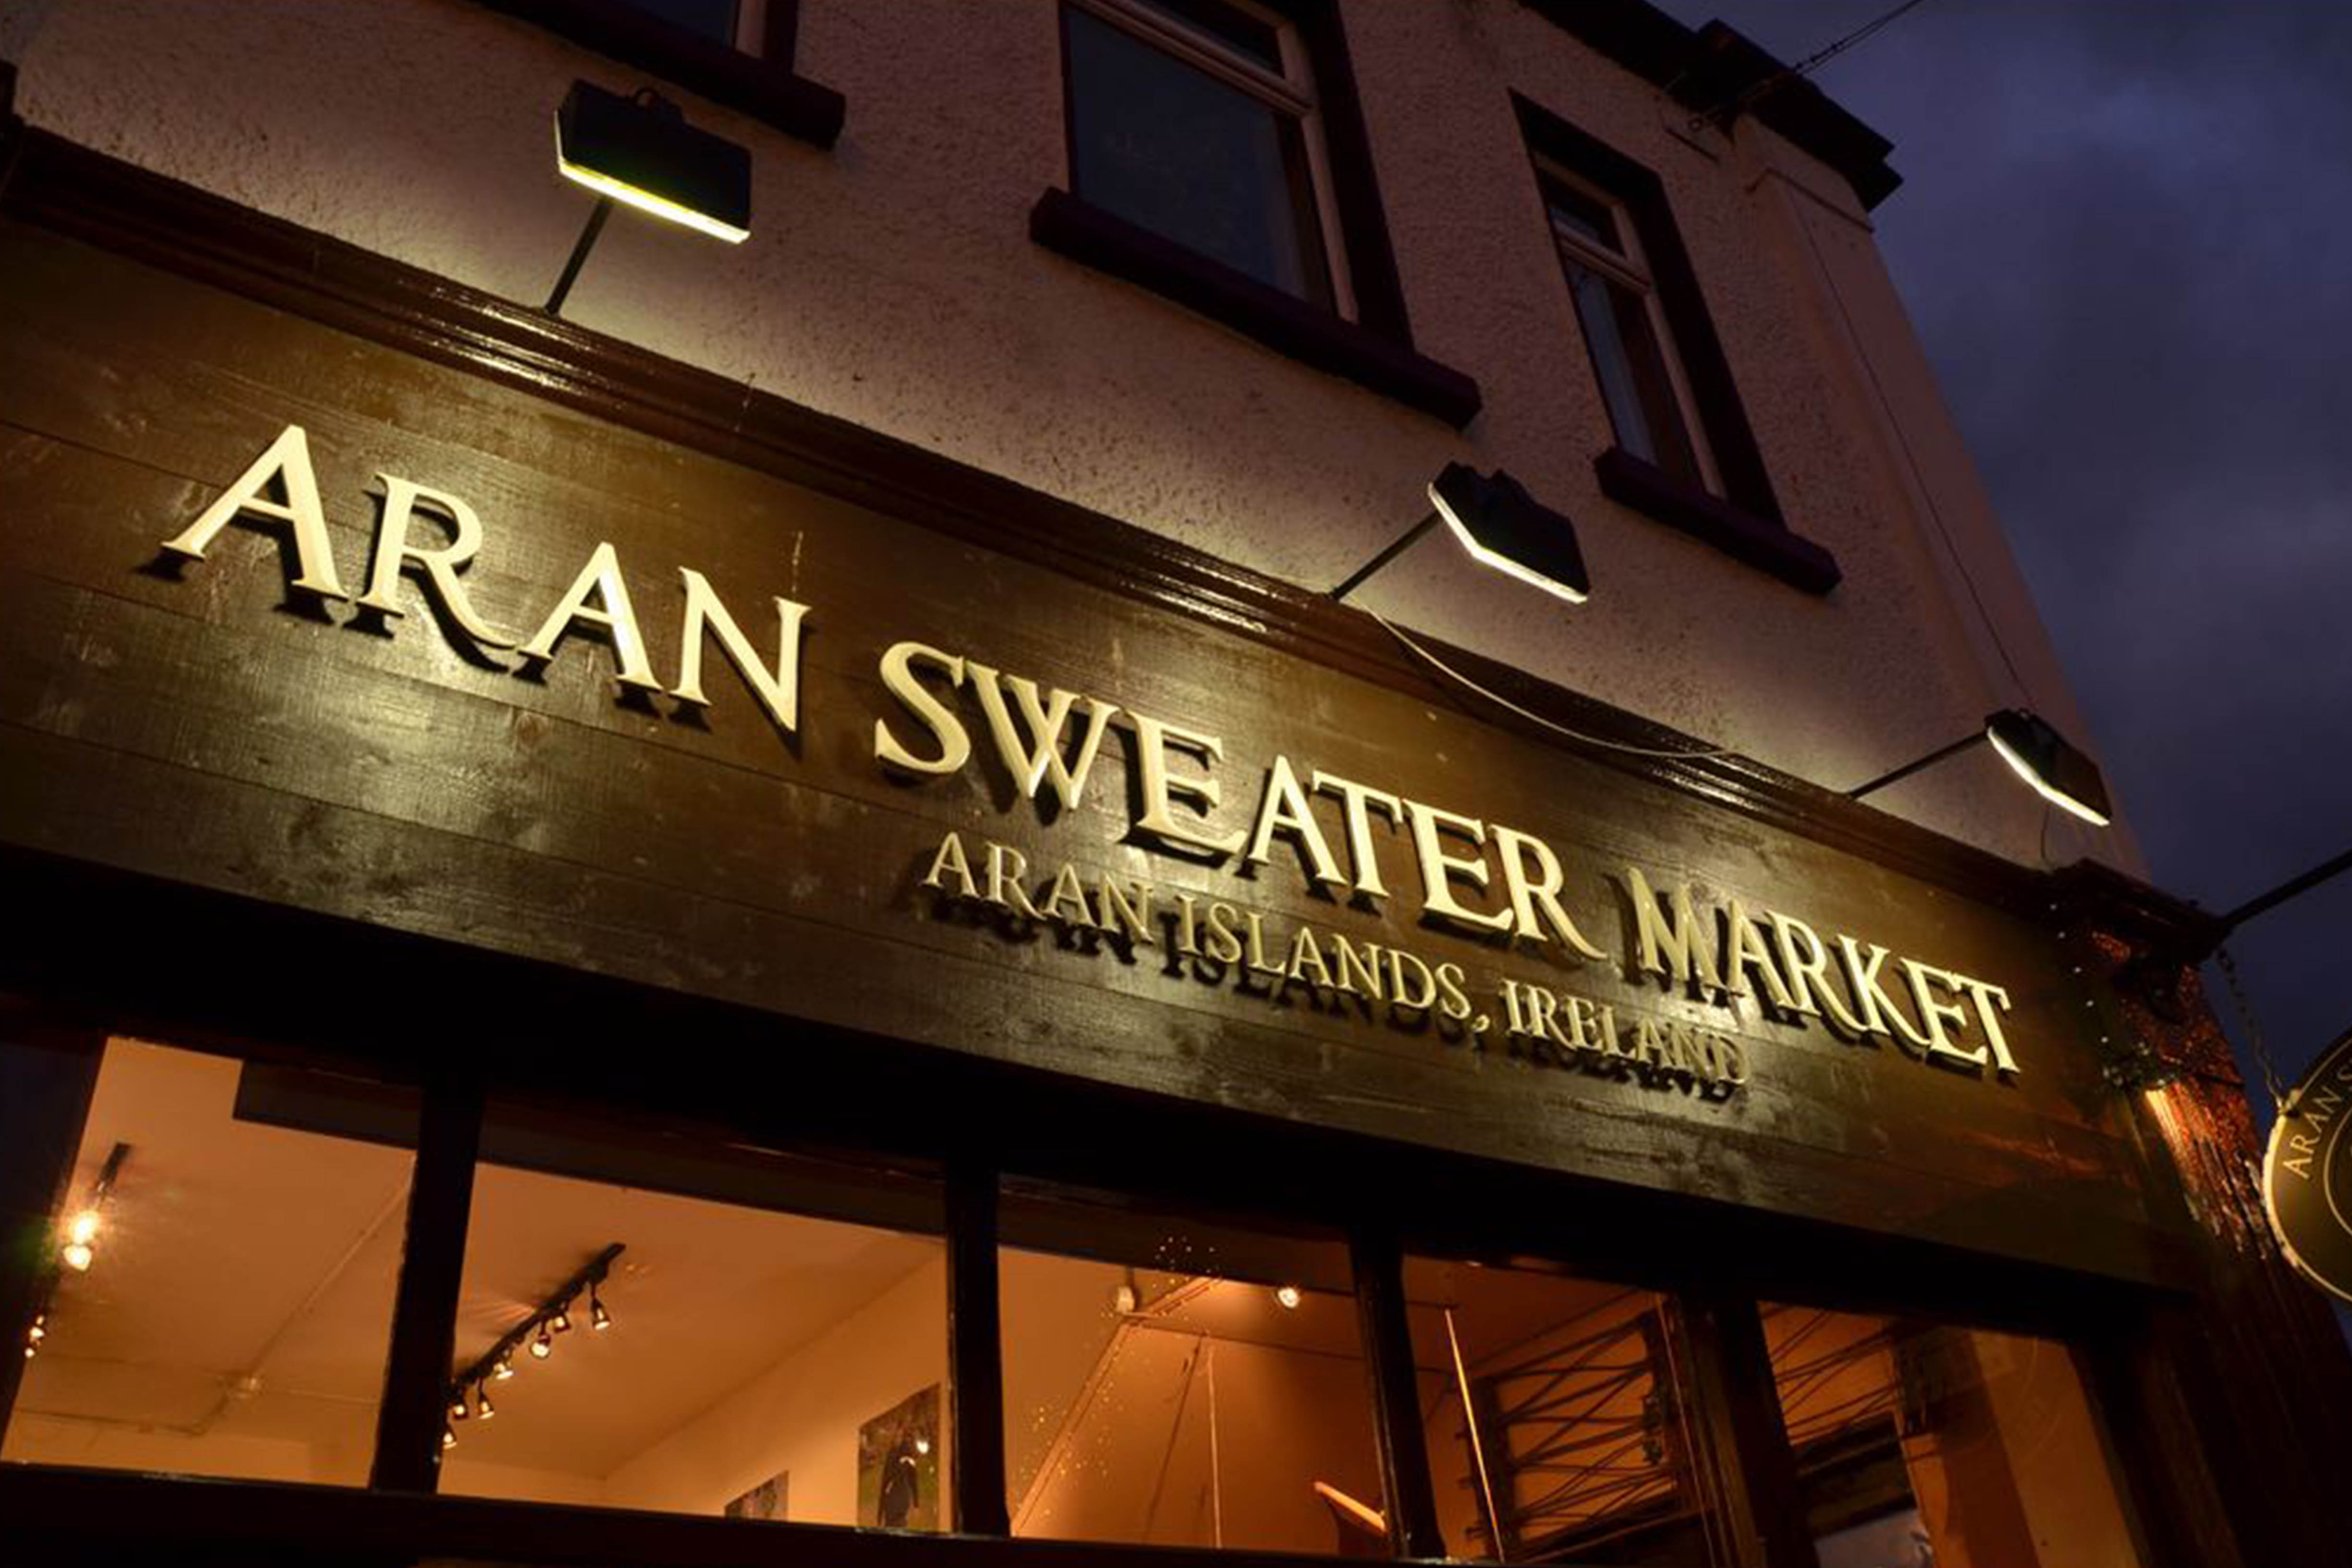 Aran Sweater Market Killarney on College St. in town centre